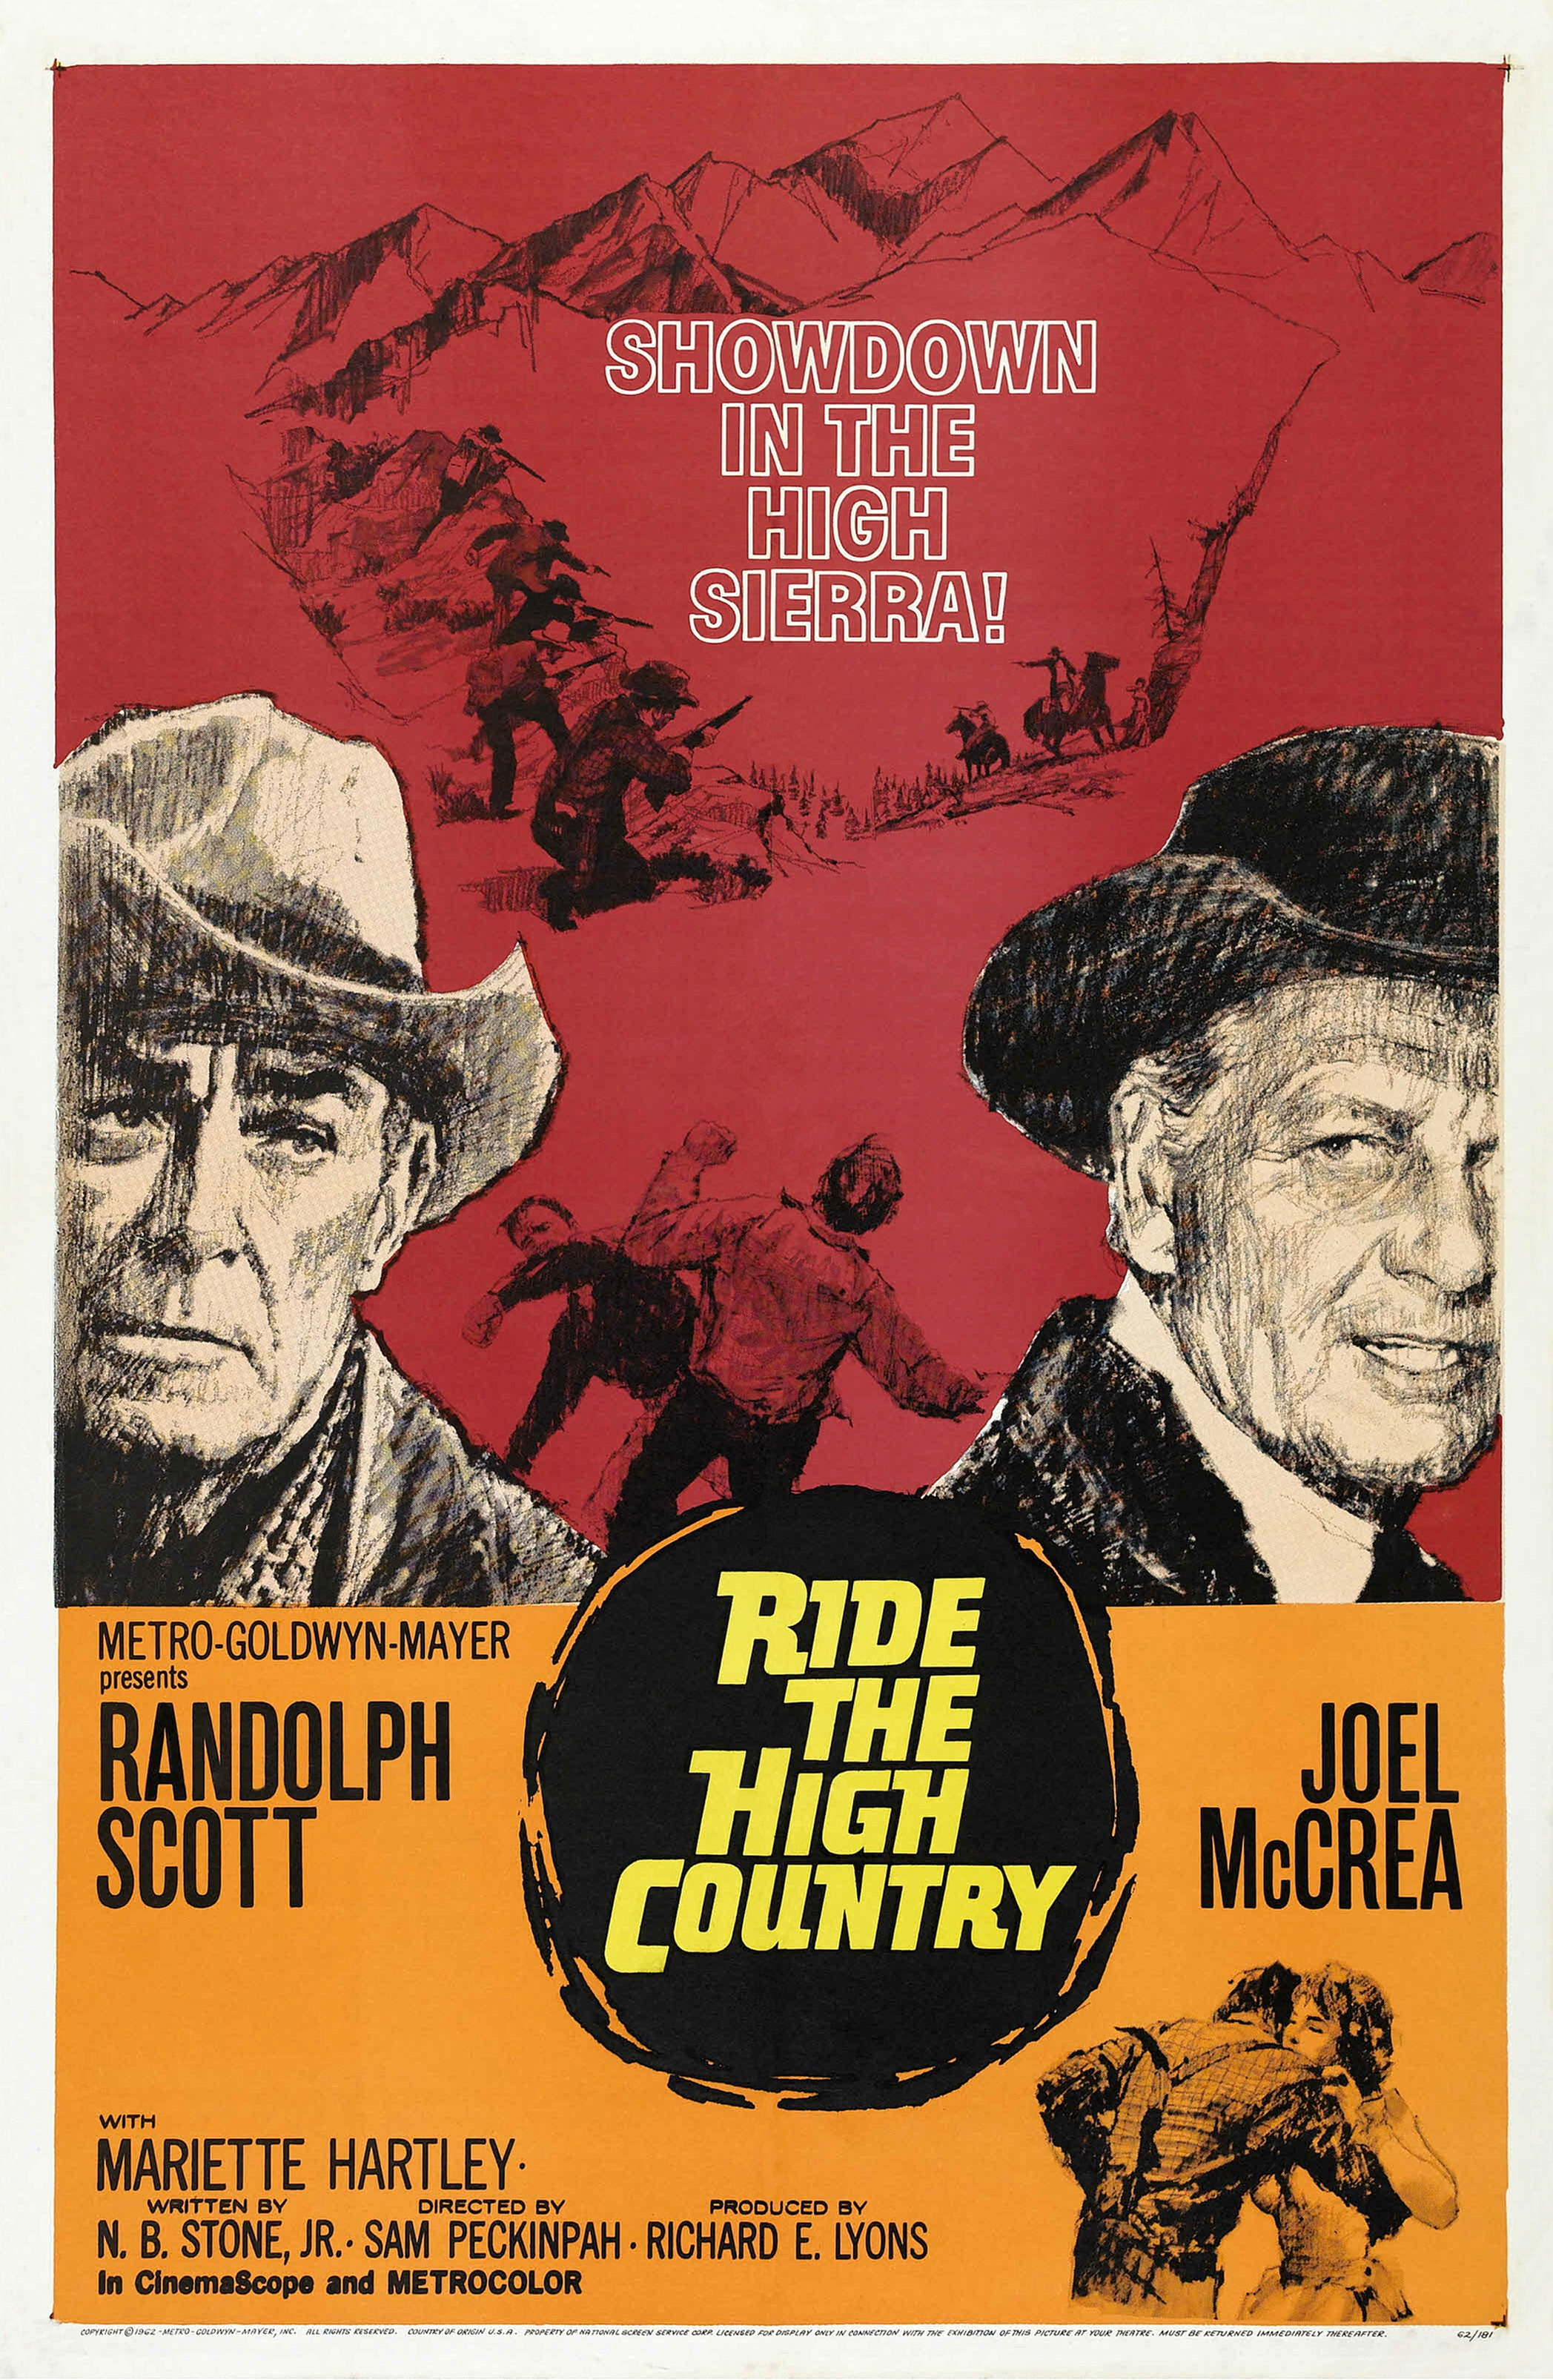 1962 Ride the high country - Duelo en la alta sierra (ing) 01